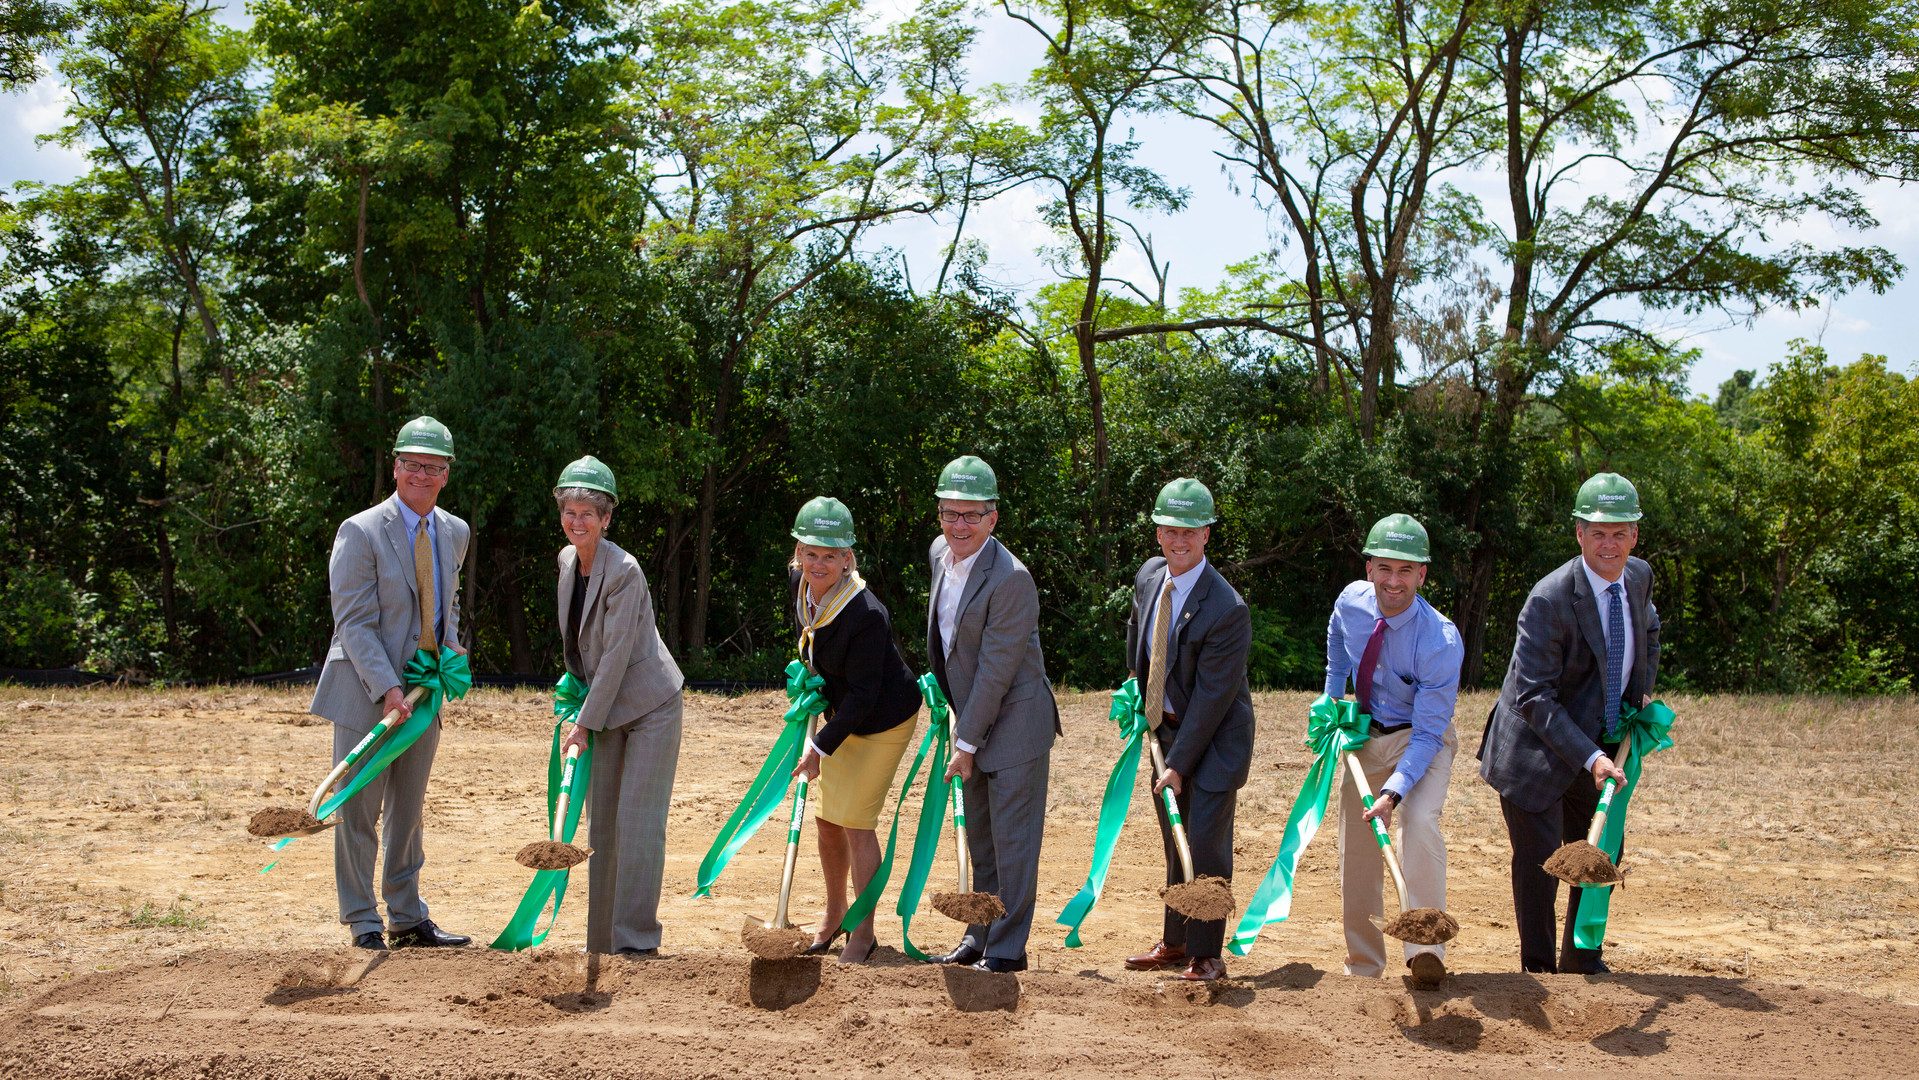 BREAKING GROUND ON NEW ADVANCED MANUFACTURING BUILDING IN BOND HILL